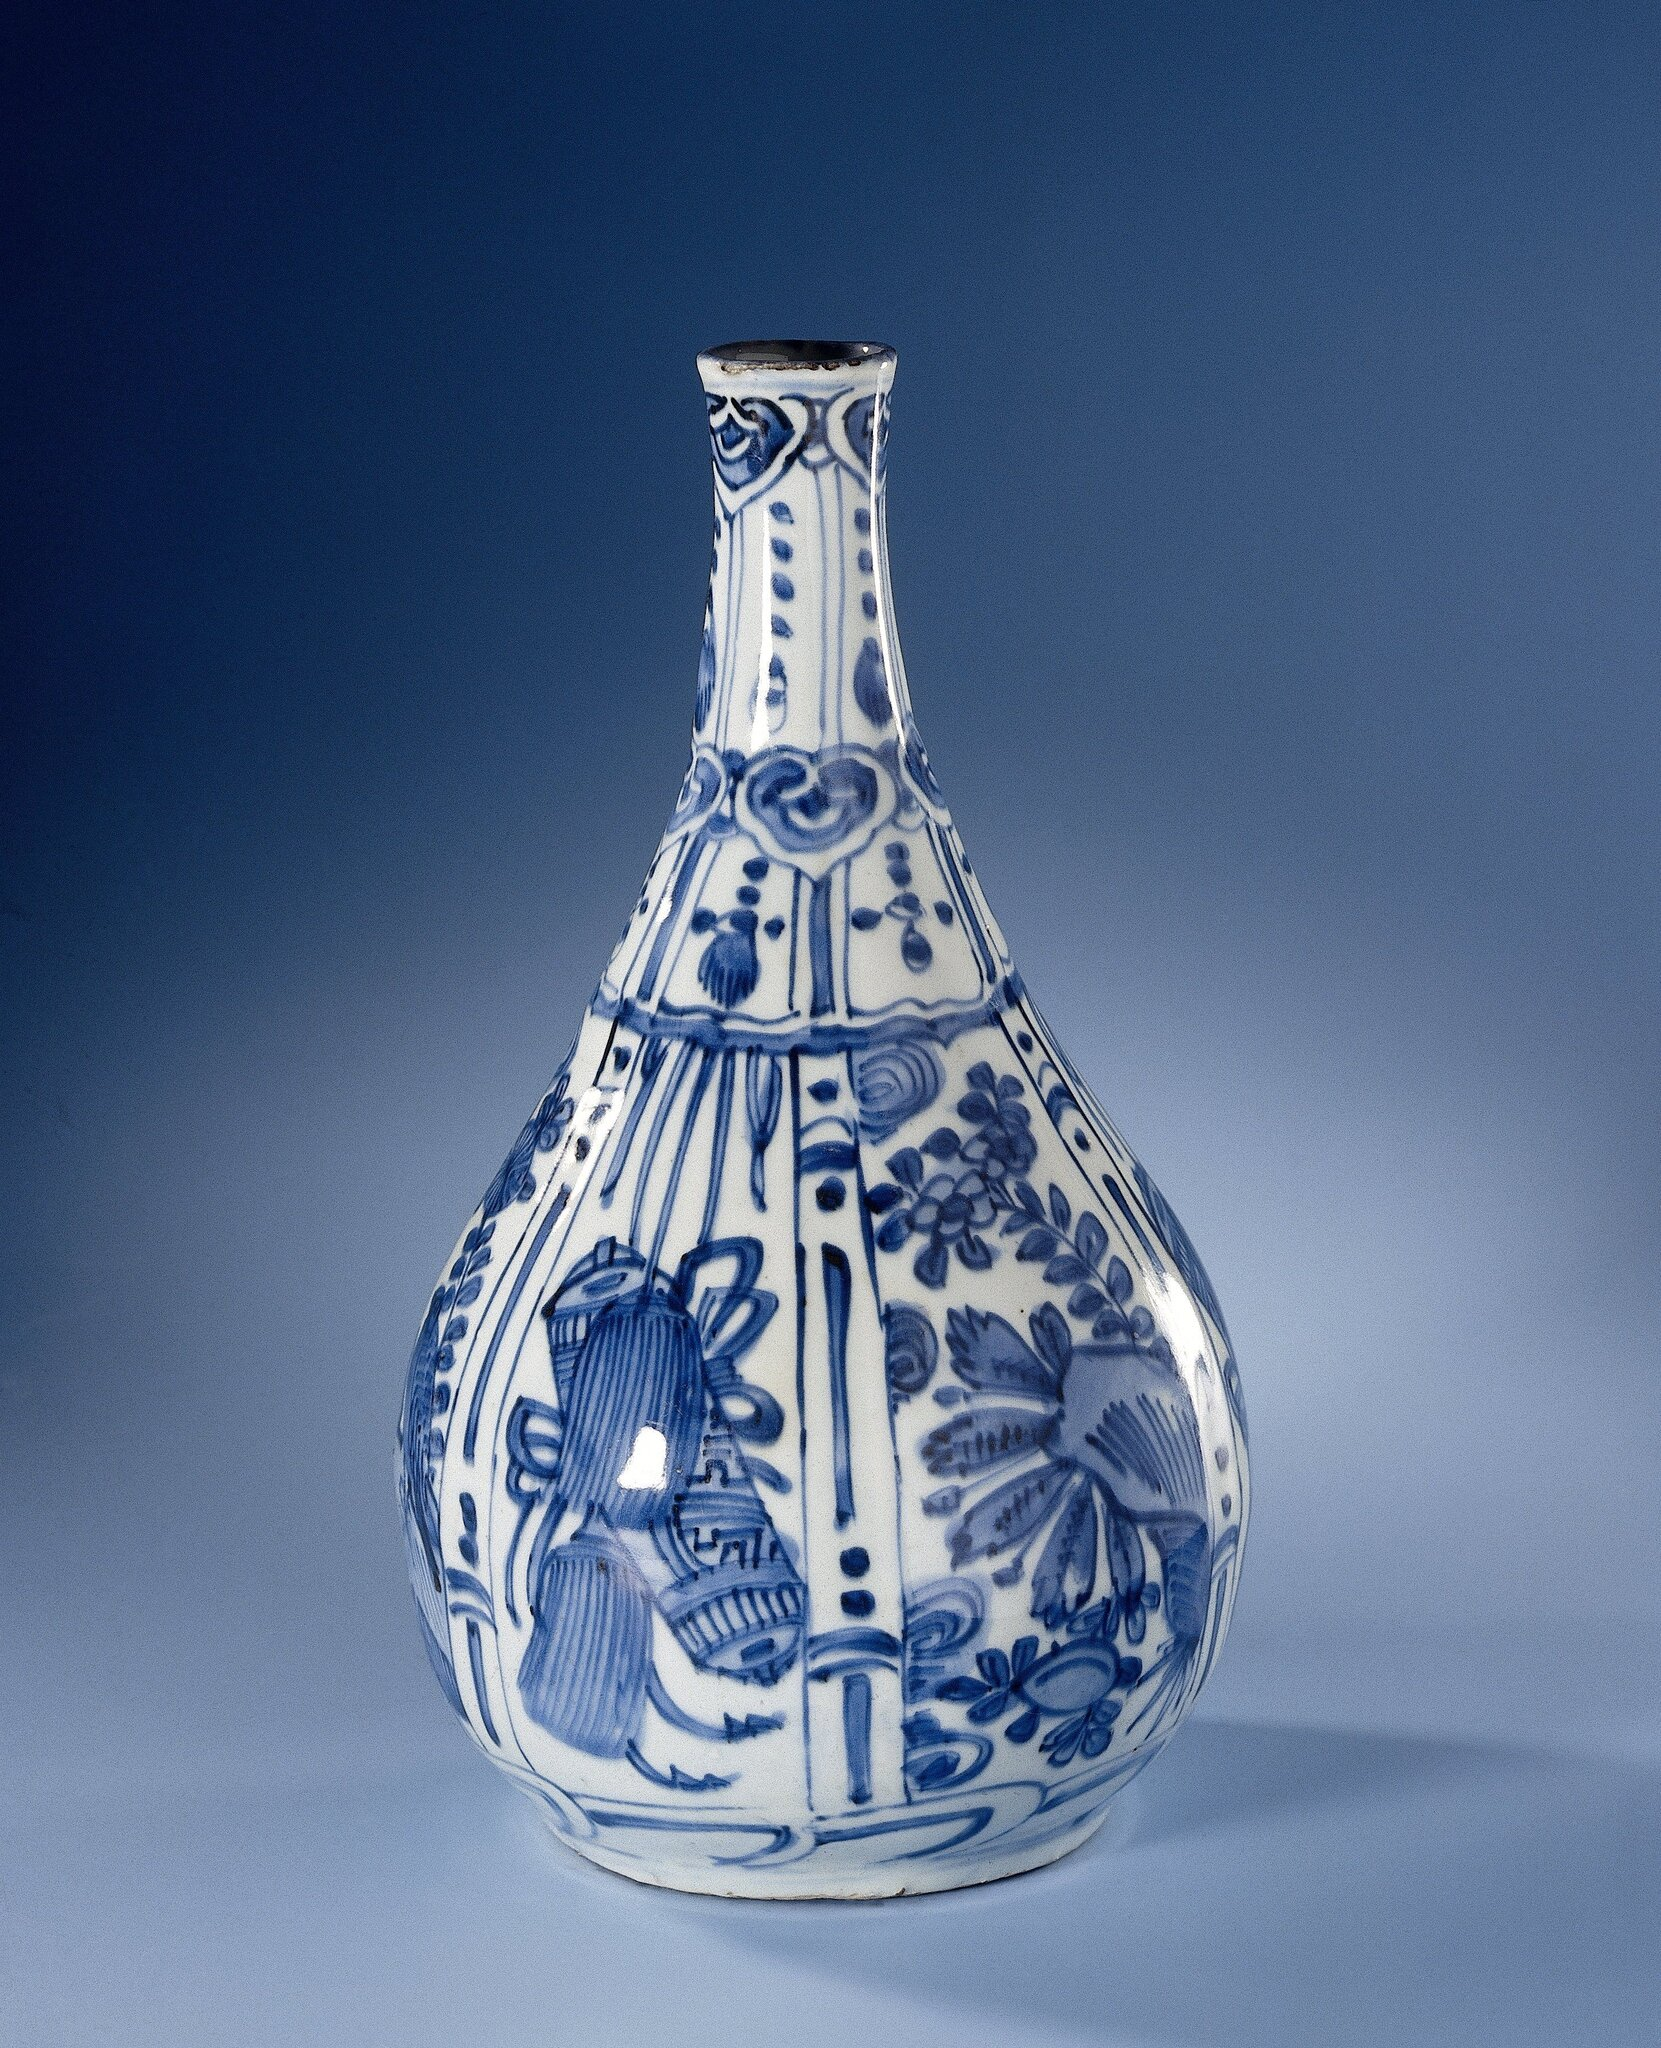 Blue_and_white_pear_shaped_bottle__Wanli_period__1573_1619___1600_1650